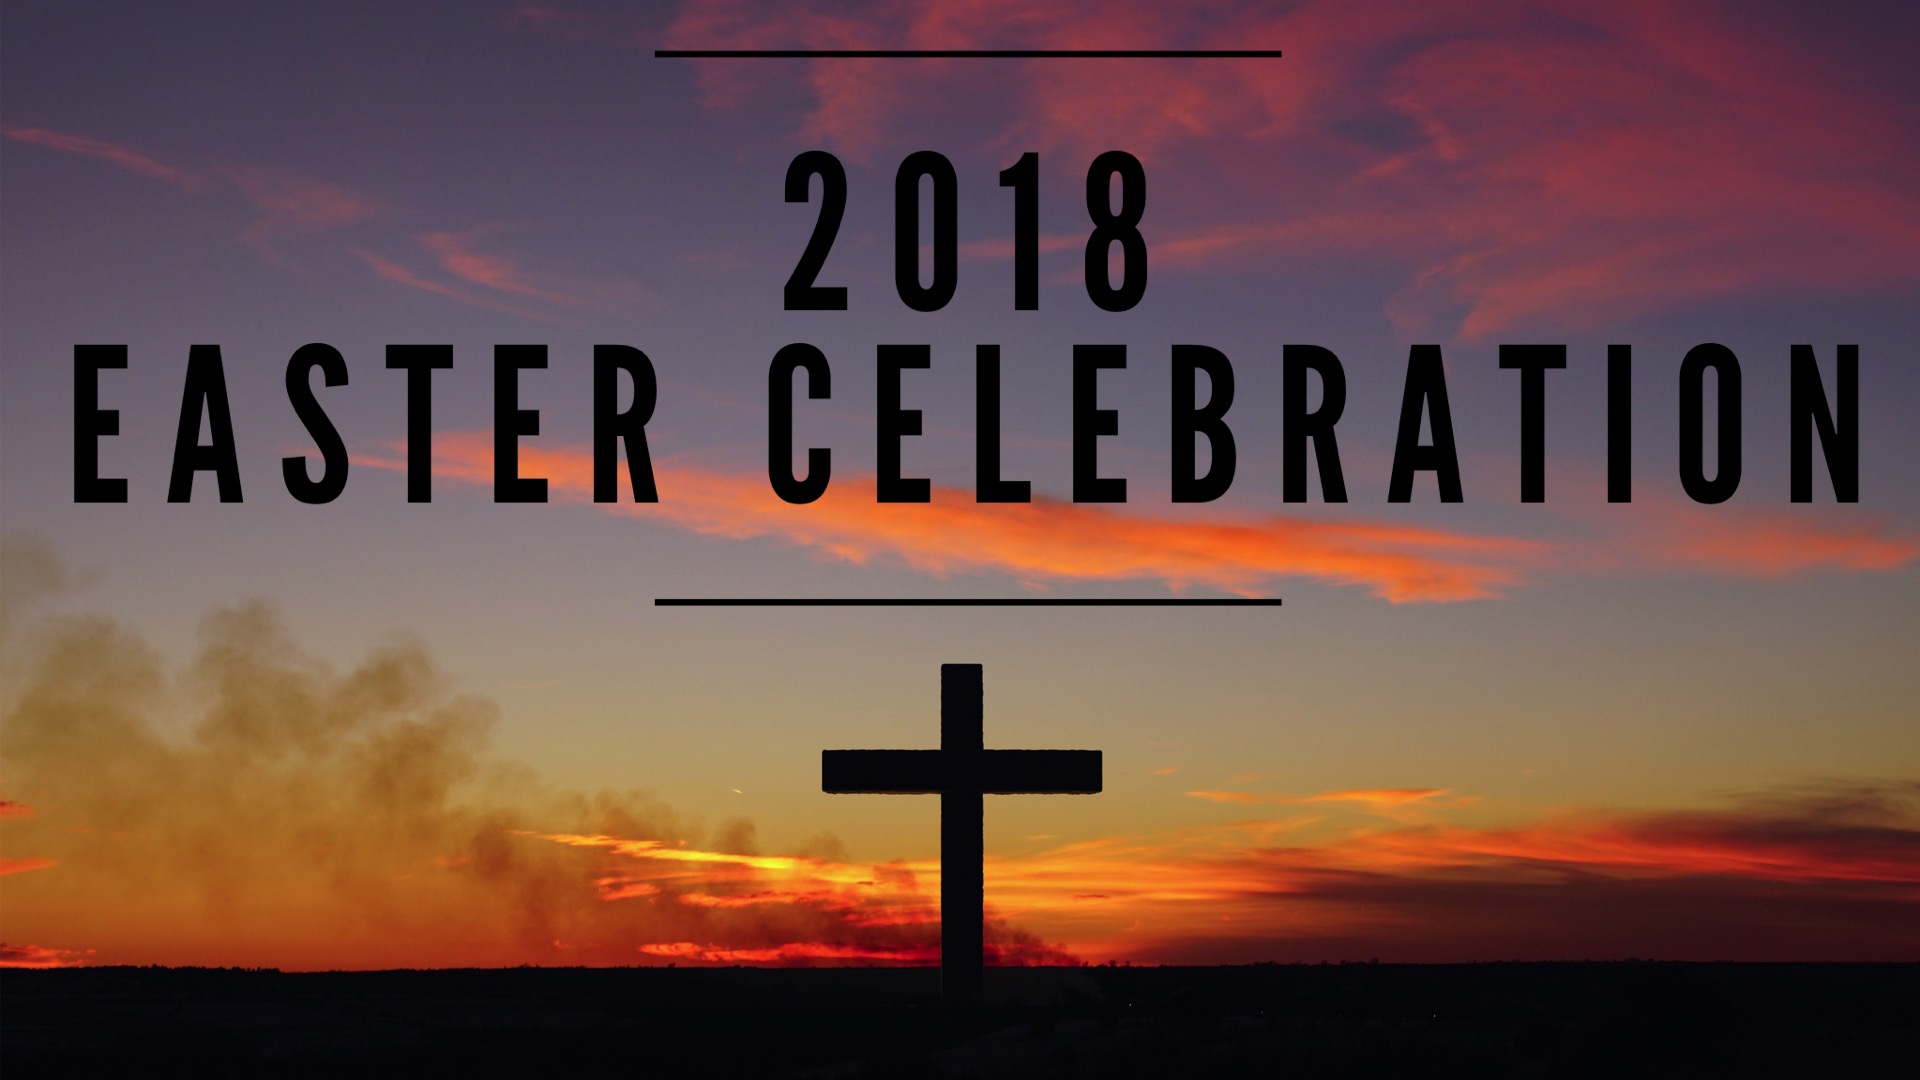 Effects of the Resurrection (Colossians 3:1-4) - Easter Sunday, April 1, 2018